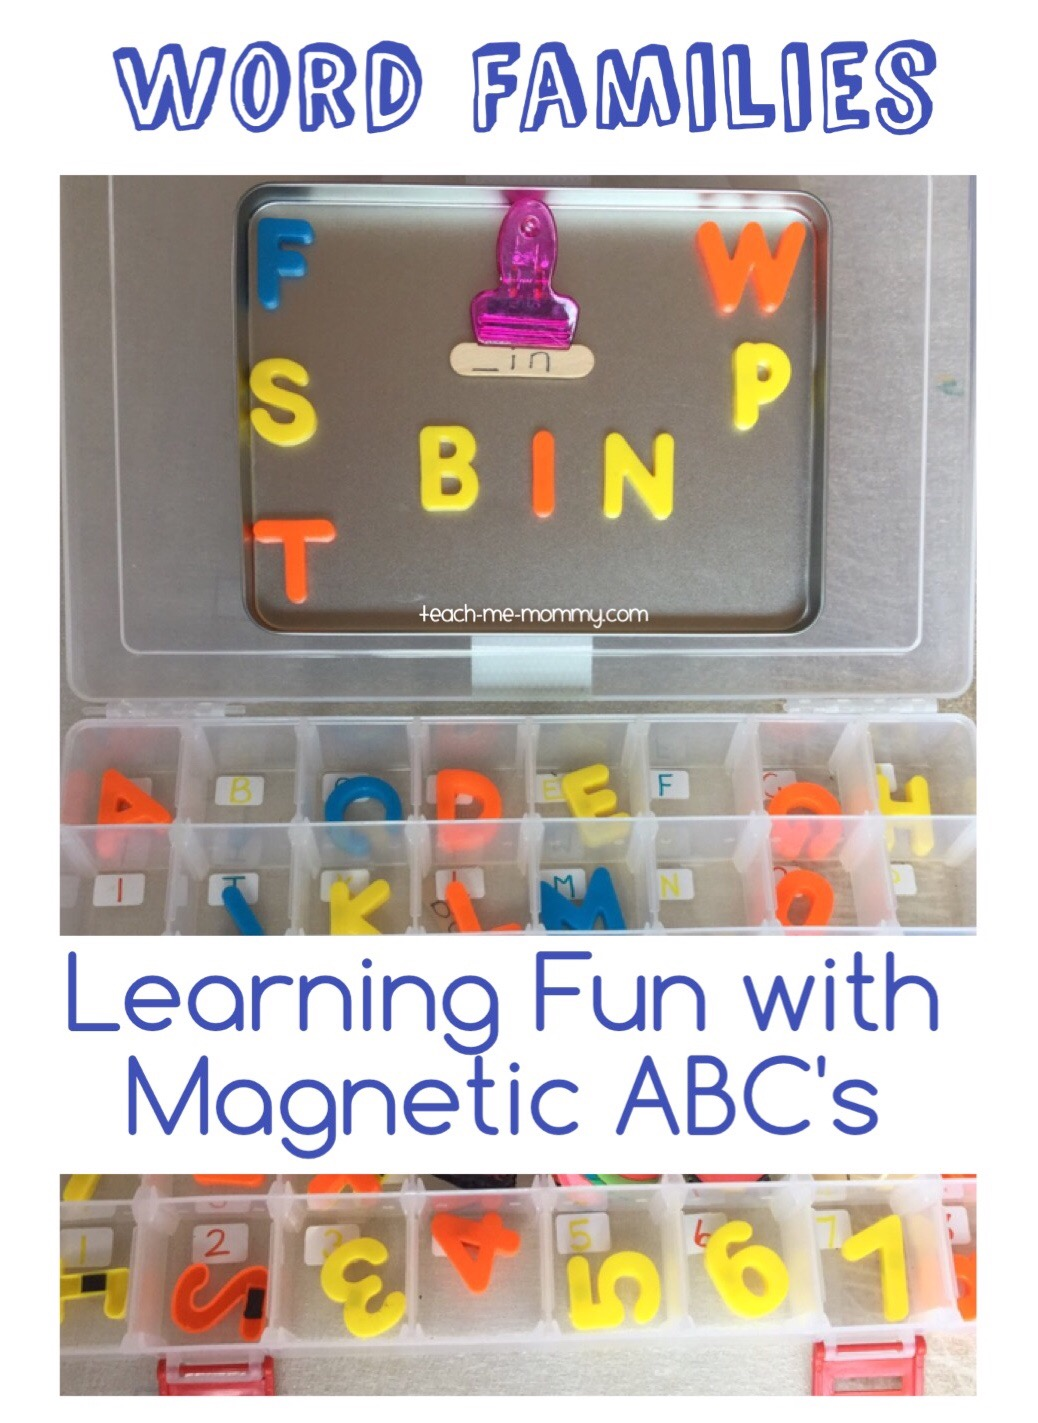 magnetic abc learning fun